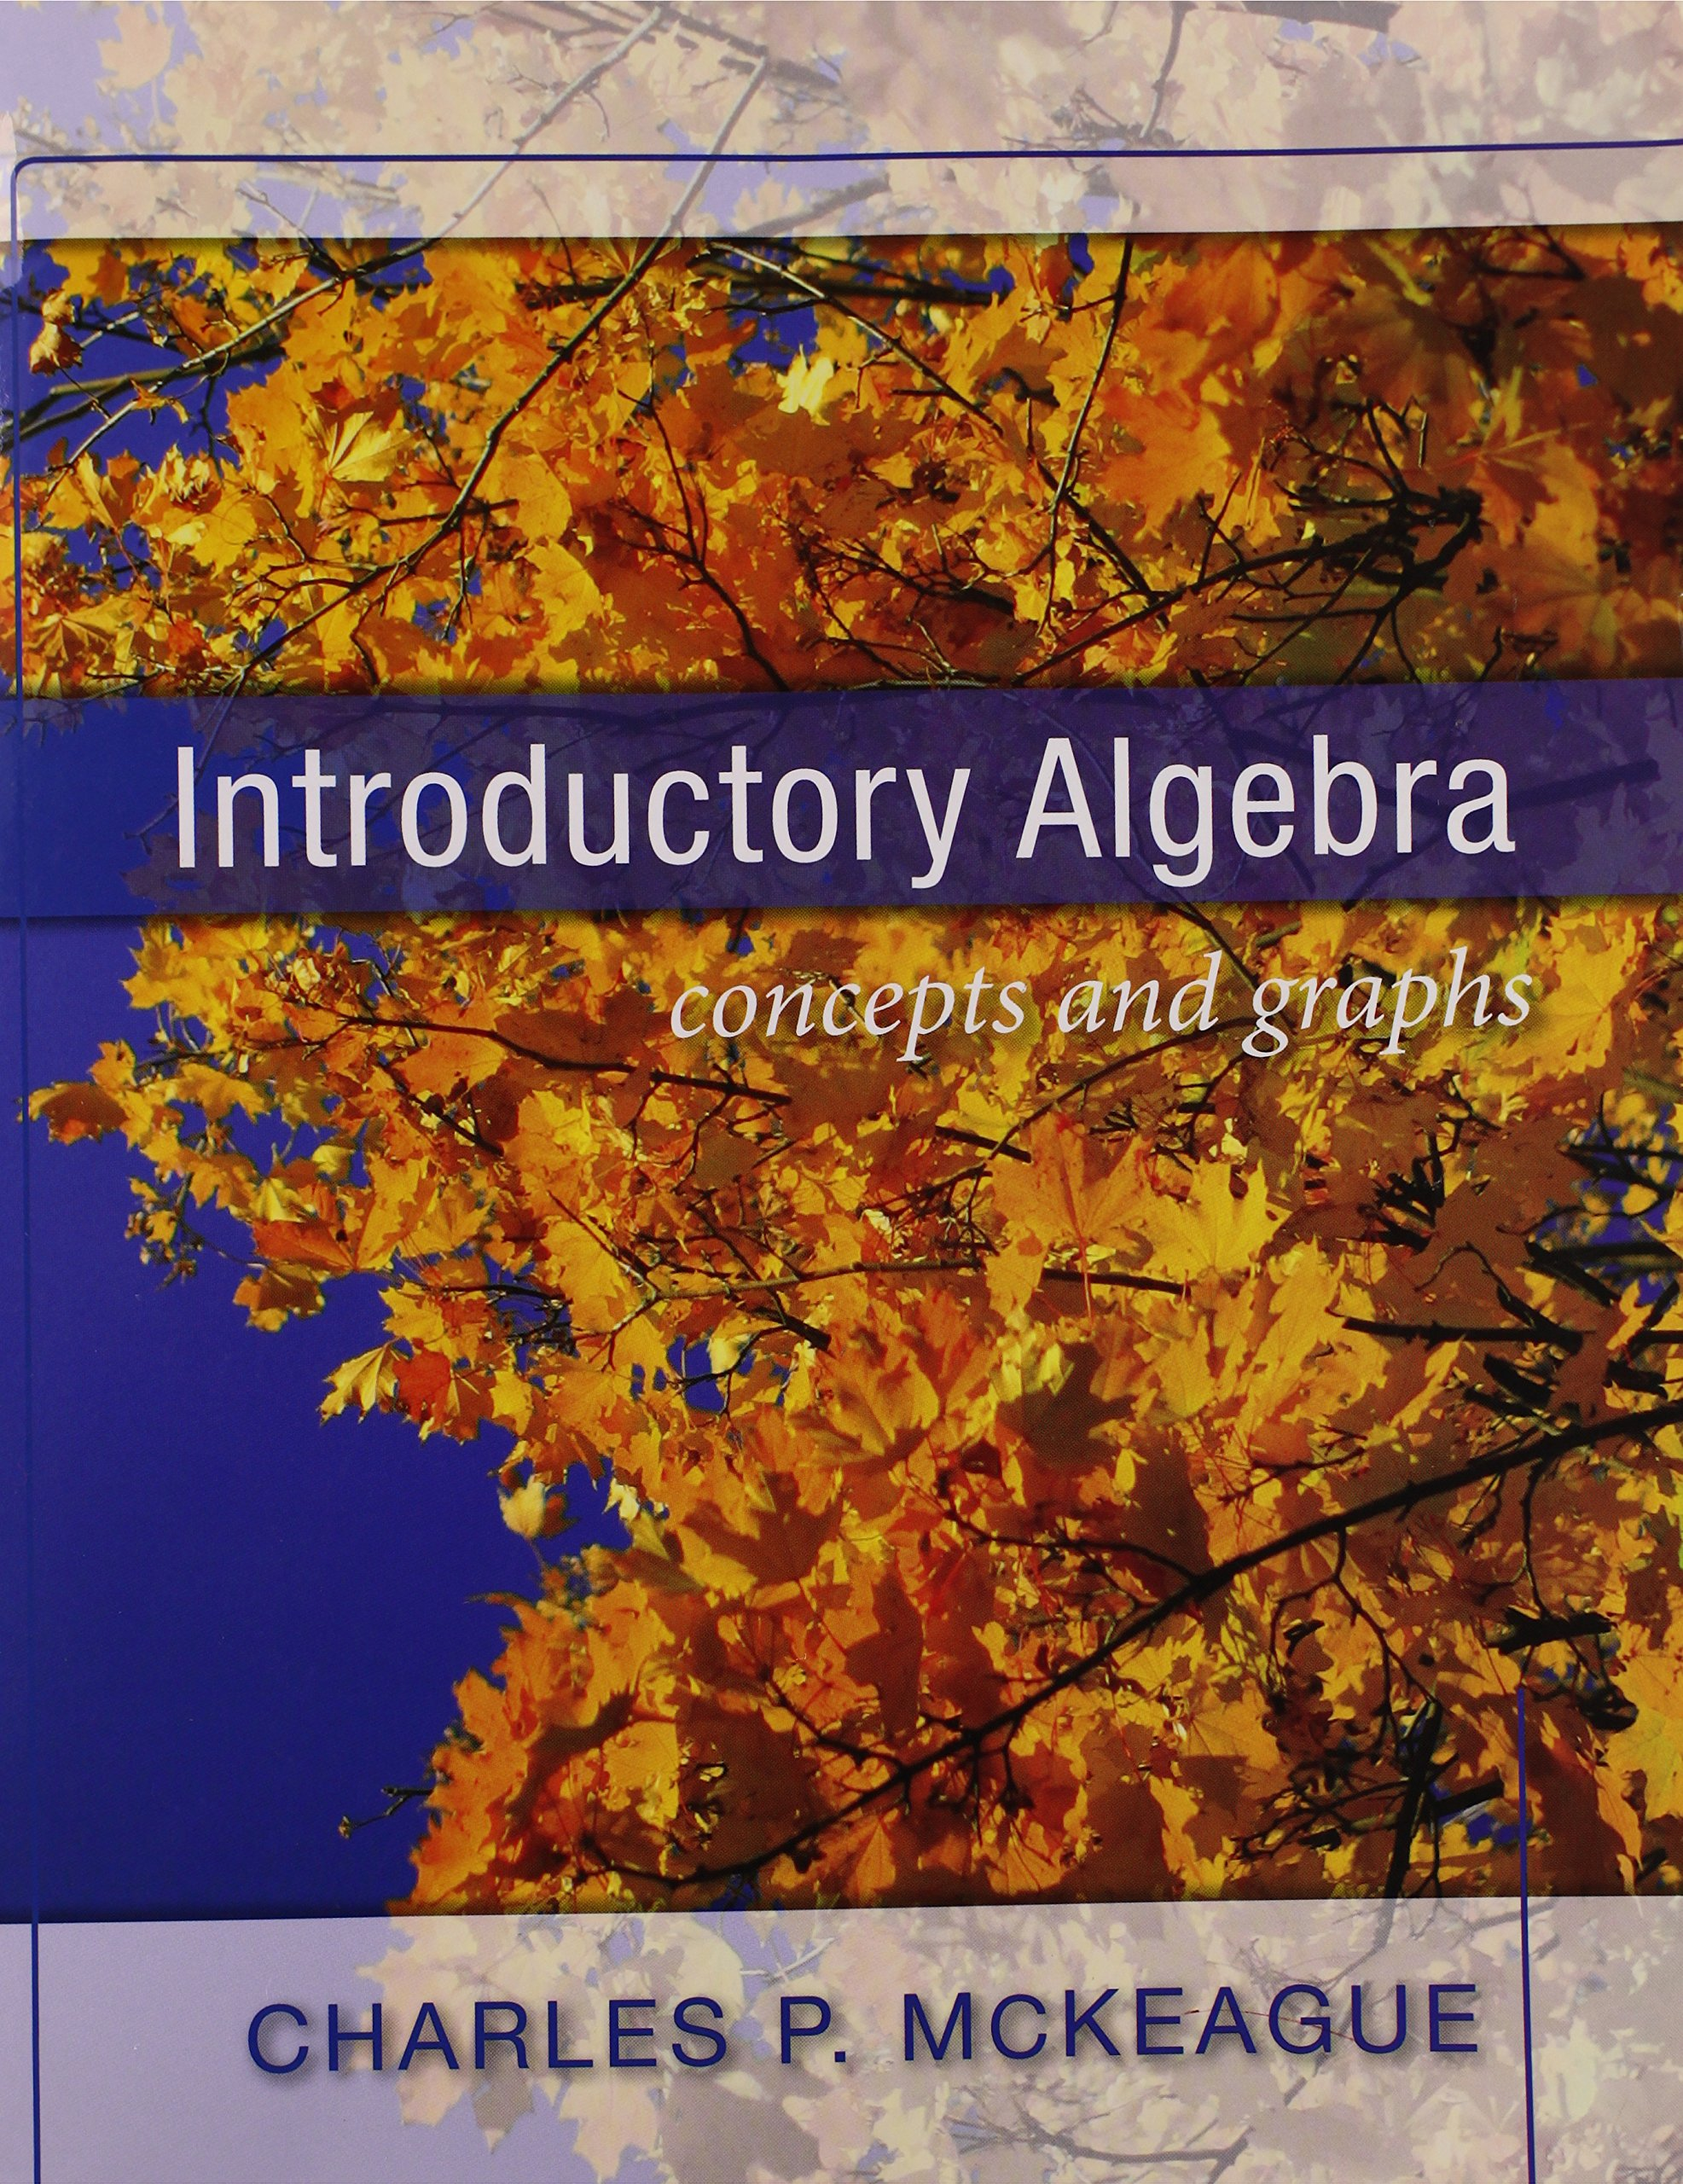 Introductory algebra concepts and graphs charles p mckeague introductory algebra concepts and graphs charles p mckeague 9781936368020 amazon books fandeluxe Images